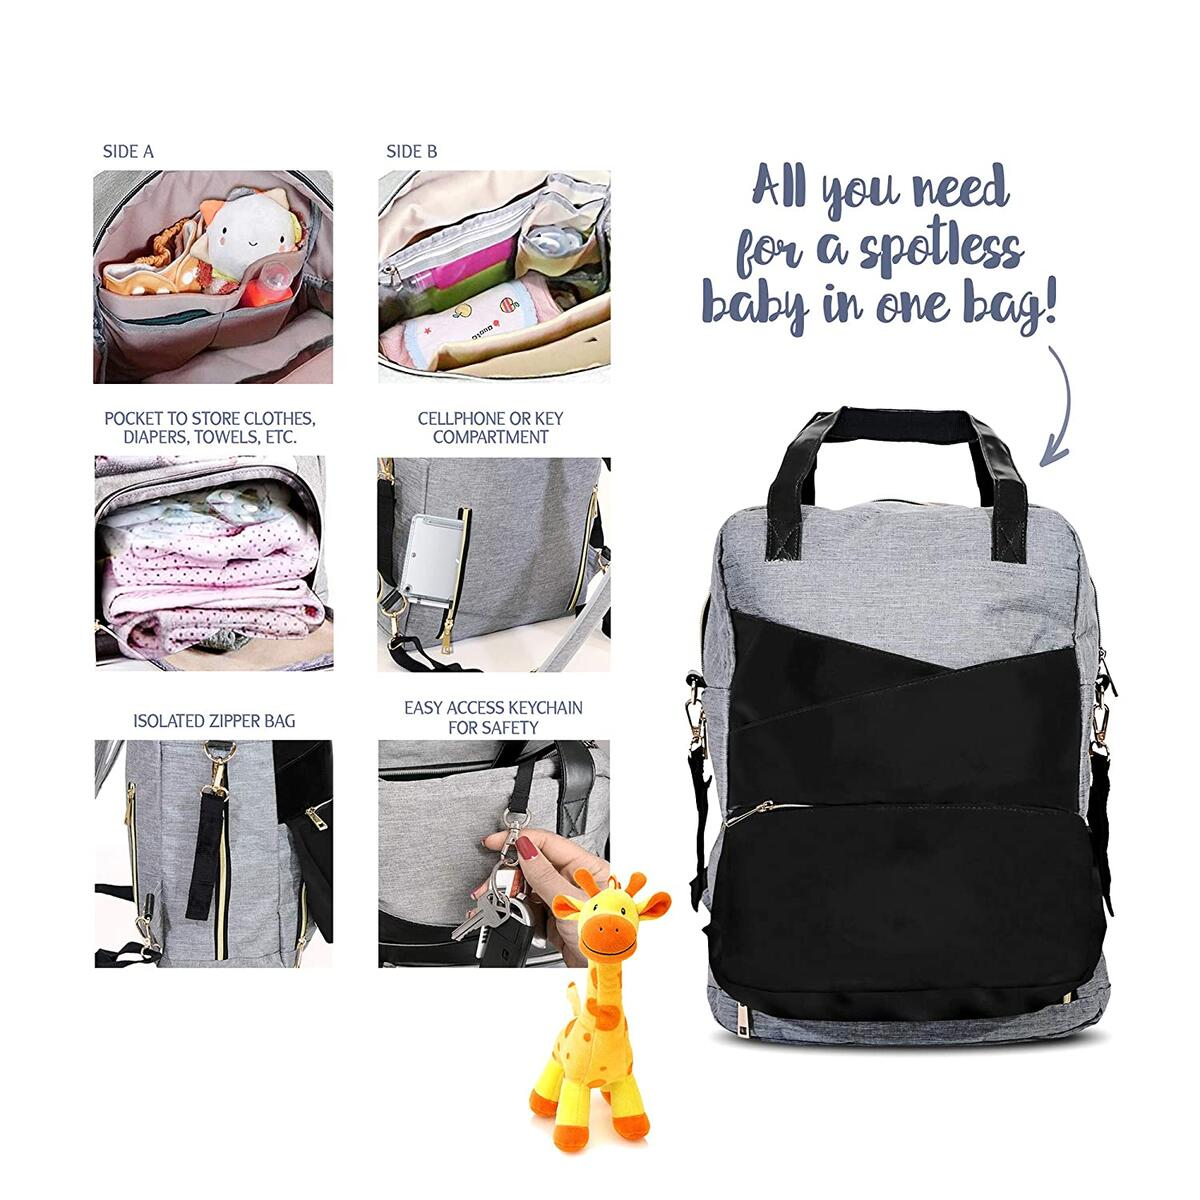 Diaper Bag Backpack 8-in-1 | Large Diaper Bag | All-Purpose Modern Faux Leather for Girl and Boy With Changing Pad | Great Baby Shower Gift for a Mom to be | Water Resistant Ideal for Newborn Diapers